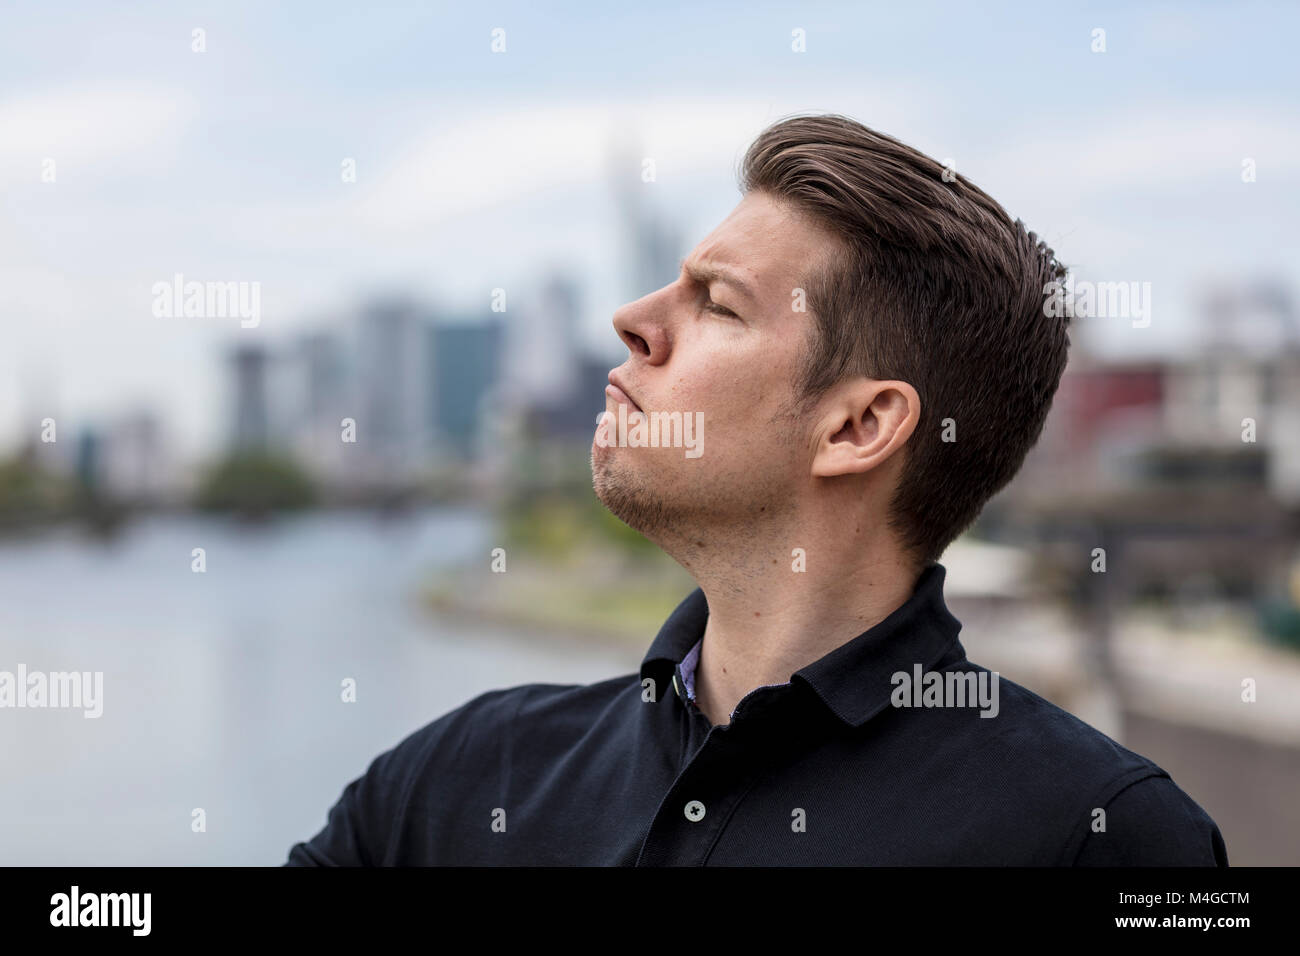 Profile of an angry man with city skyline in the background. - Stock Image